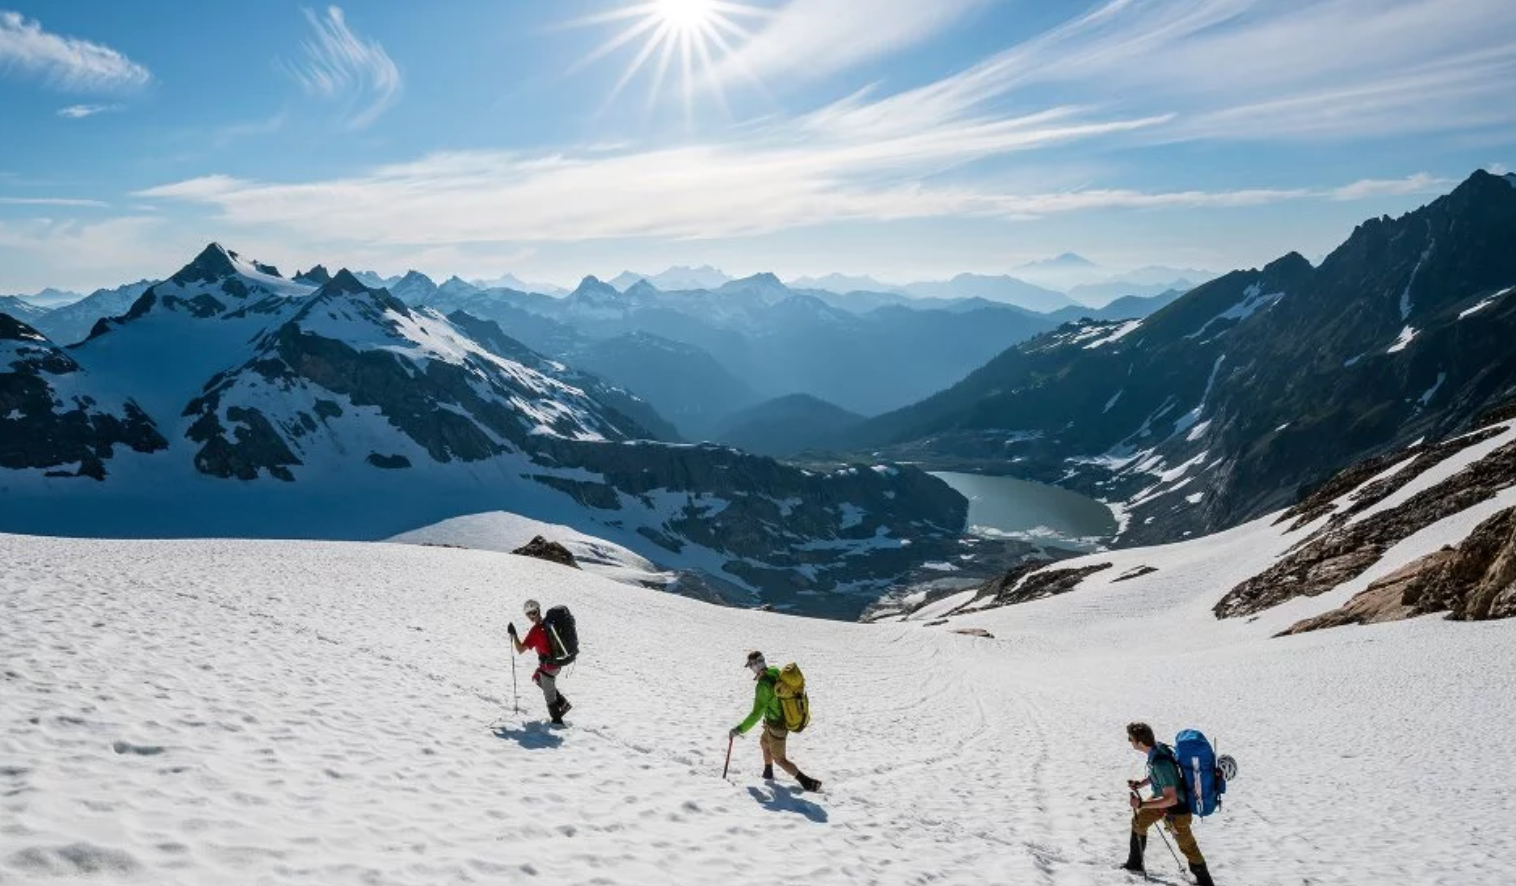 How a Mountain Guide Makes It Work on $35,000 a Year